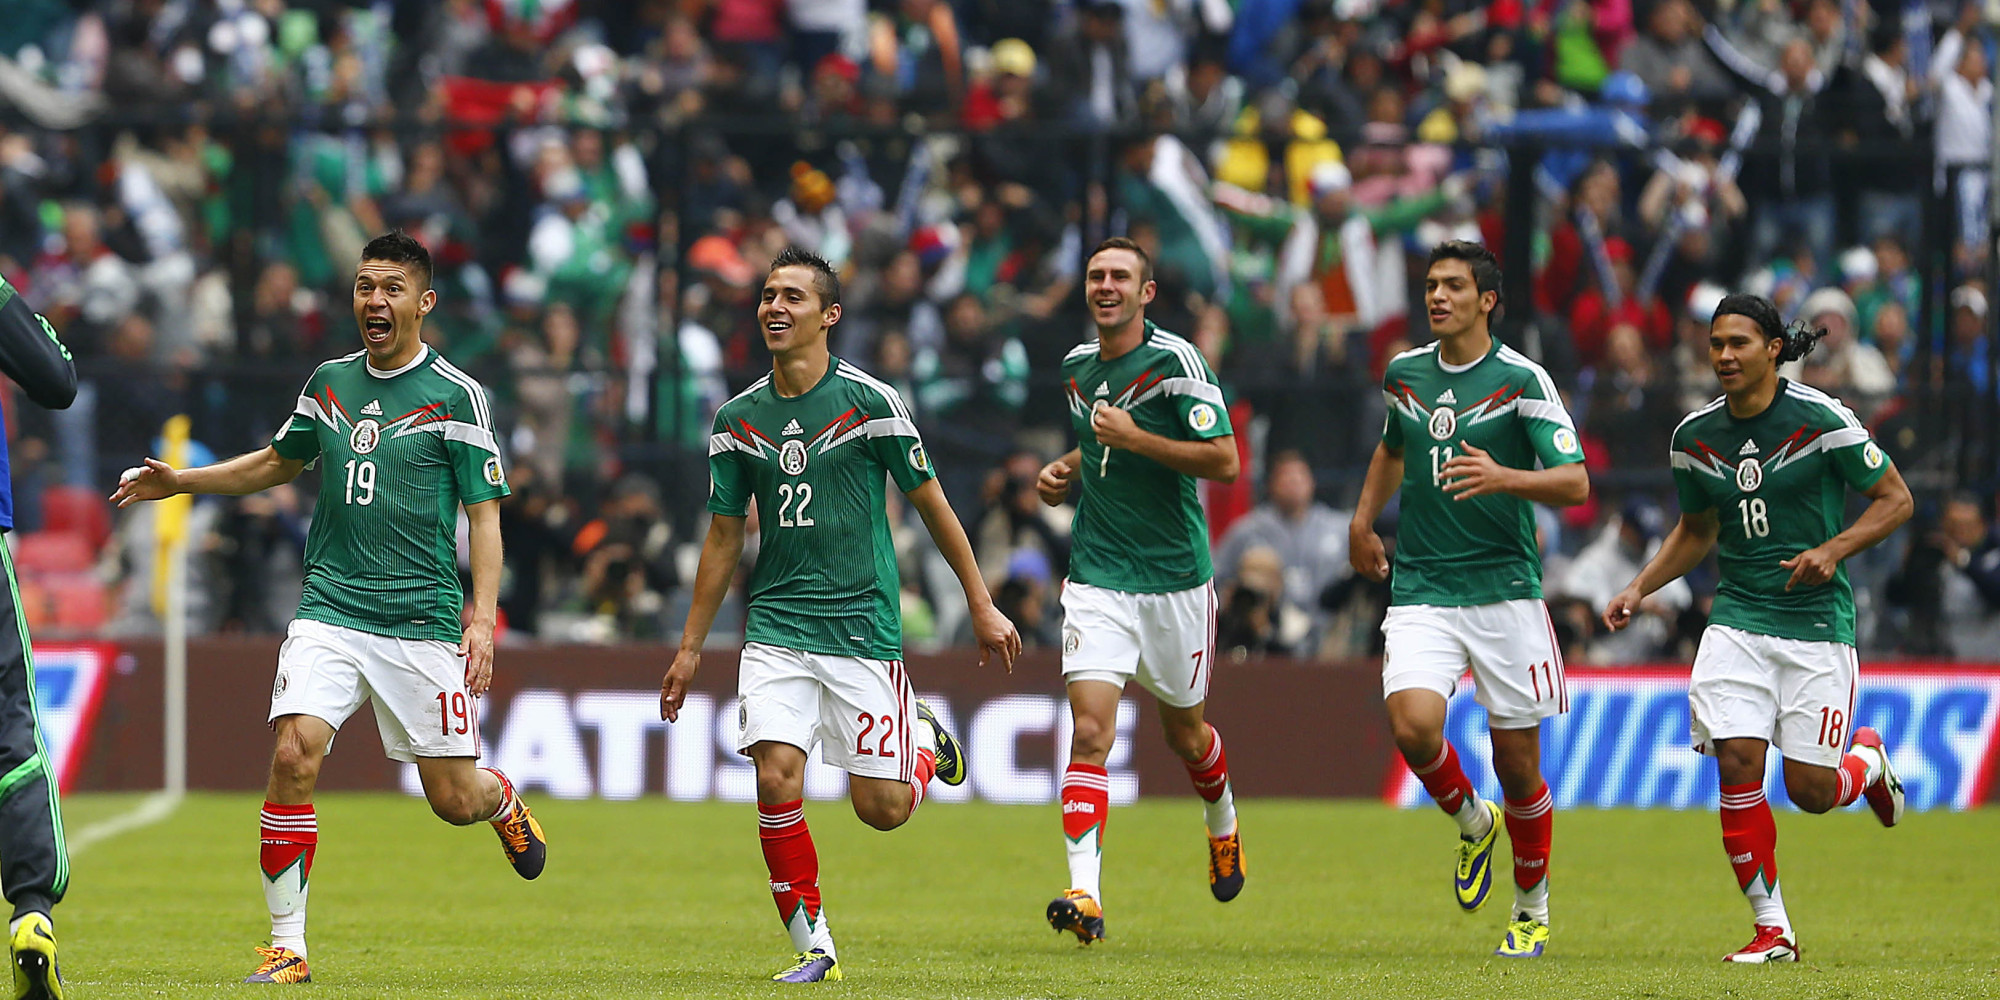 Download group a mexico 2014 world cup HD wallpaper 2000x1000 2e105f765